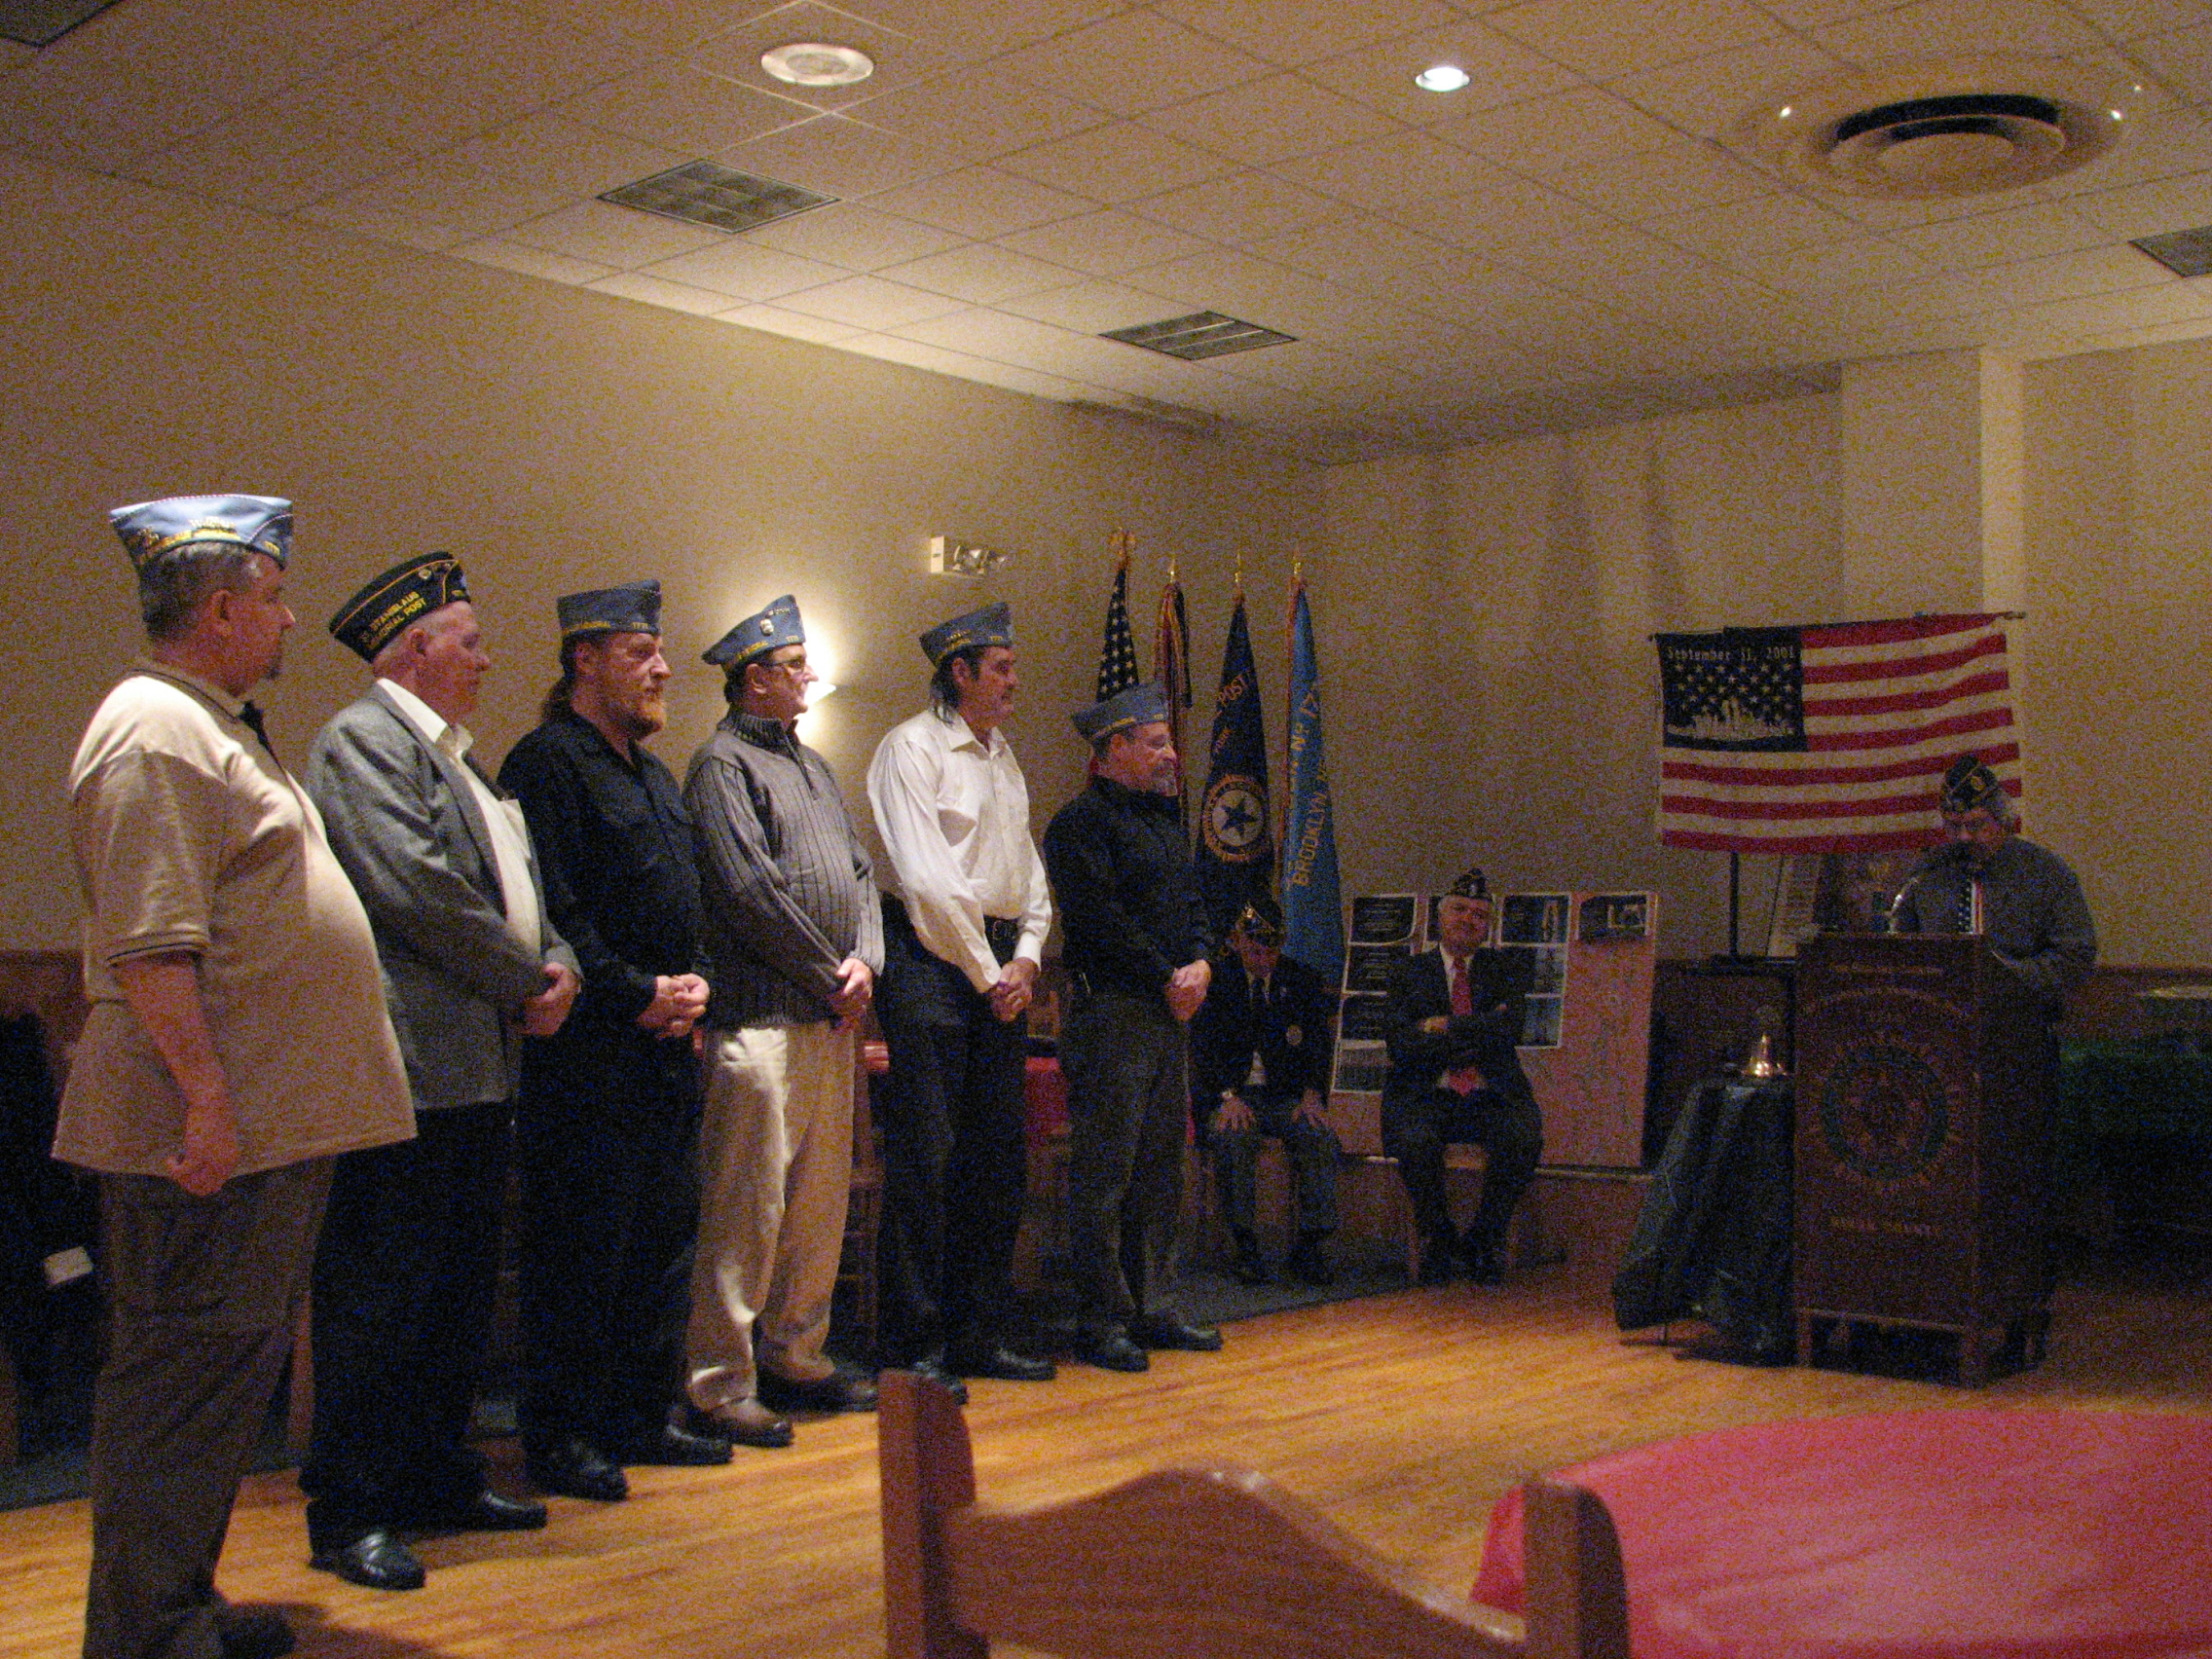 Sons Of The American Leigon Officers For The 2009 - 2010 Year.